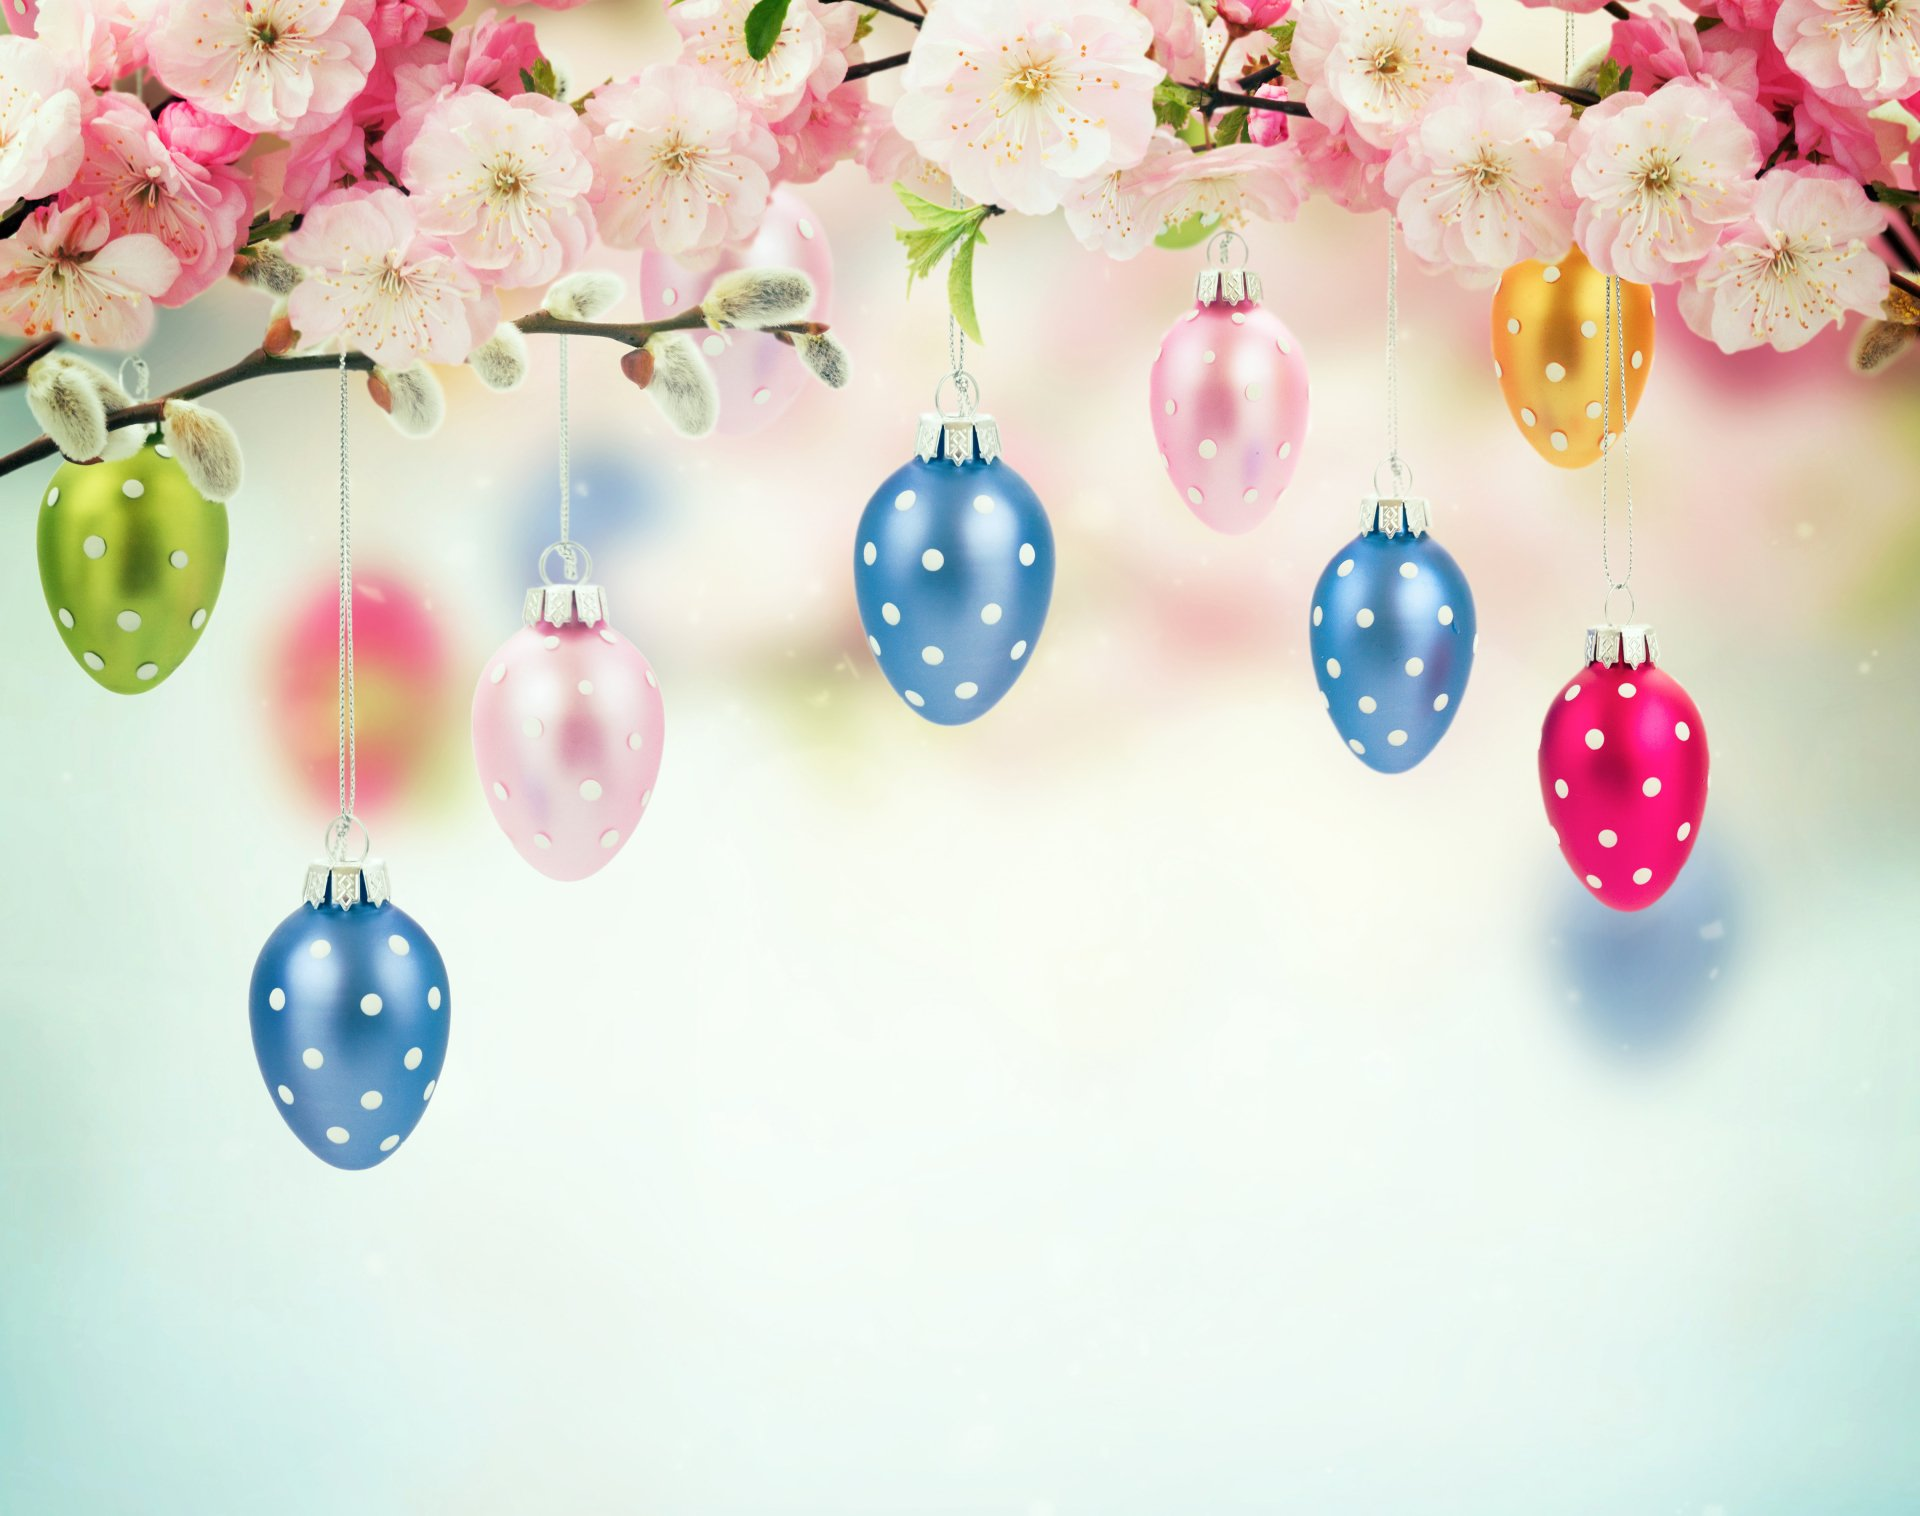 Holiday - Easter  Holiday Pink Blossom Easter Egg Christmas Ornaments Wallpaper